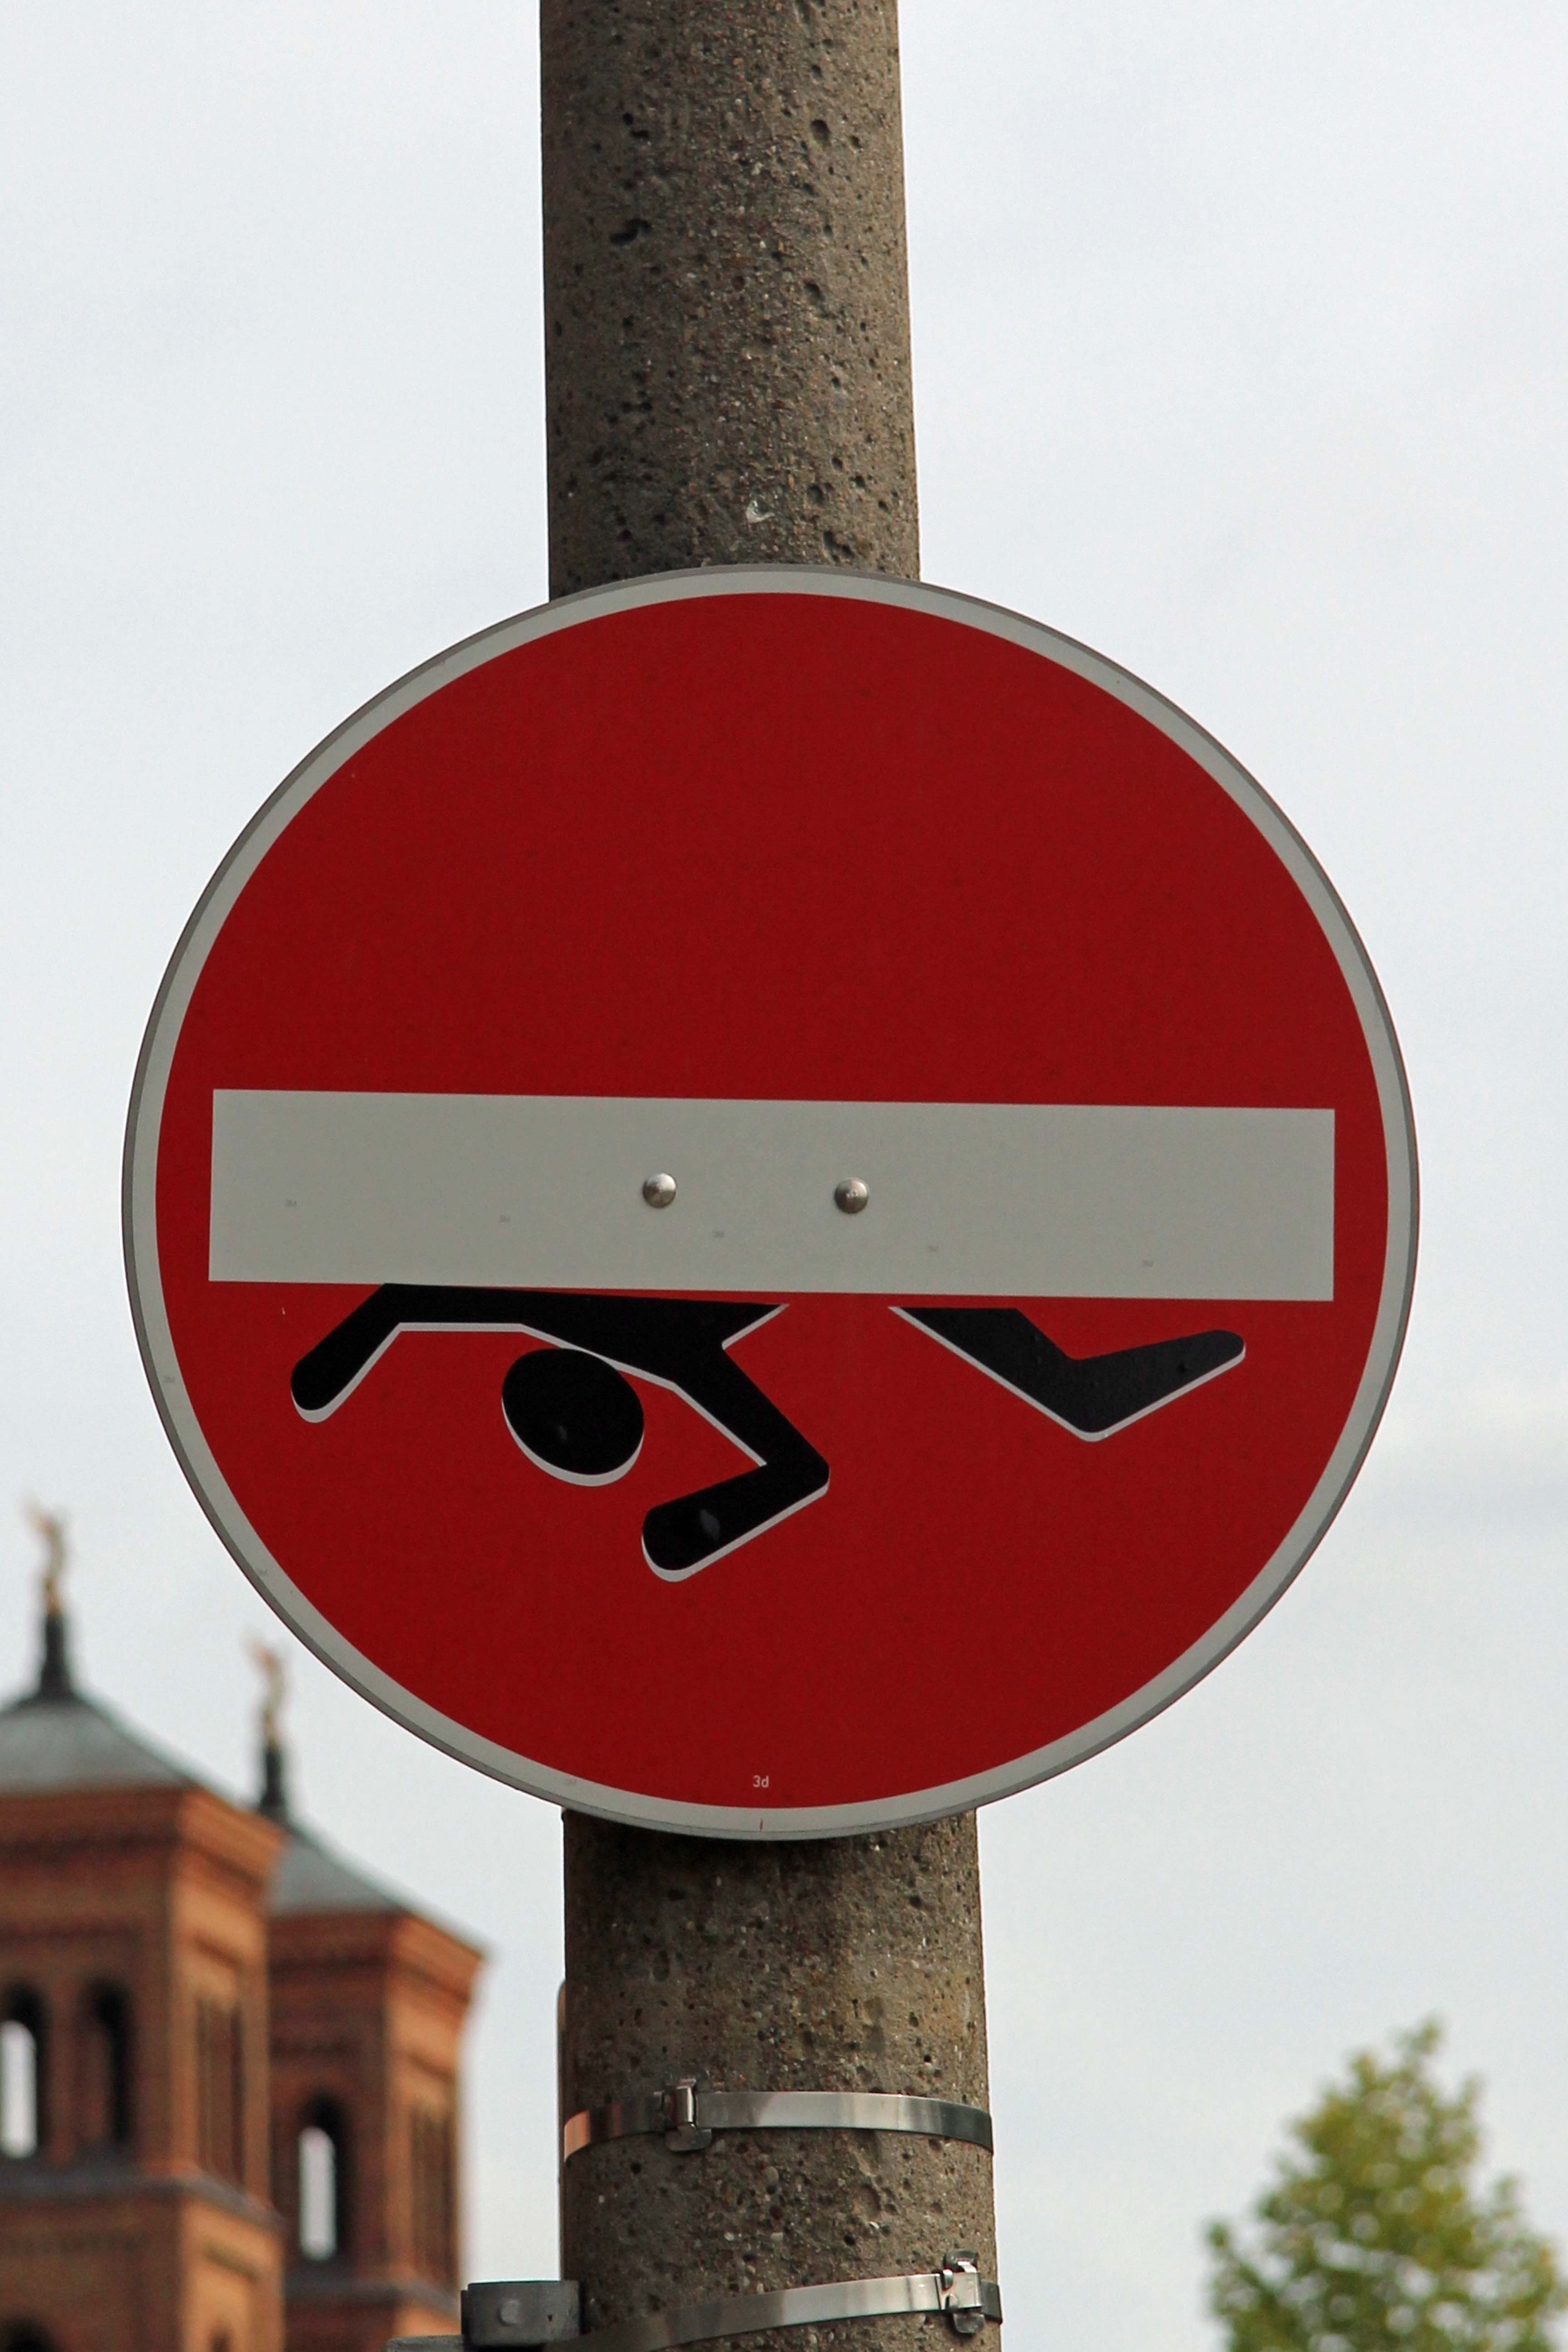 Trapped: A modified street sign - Street Art by CLET in Berlin